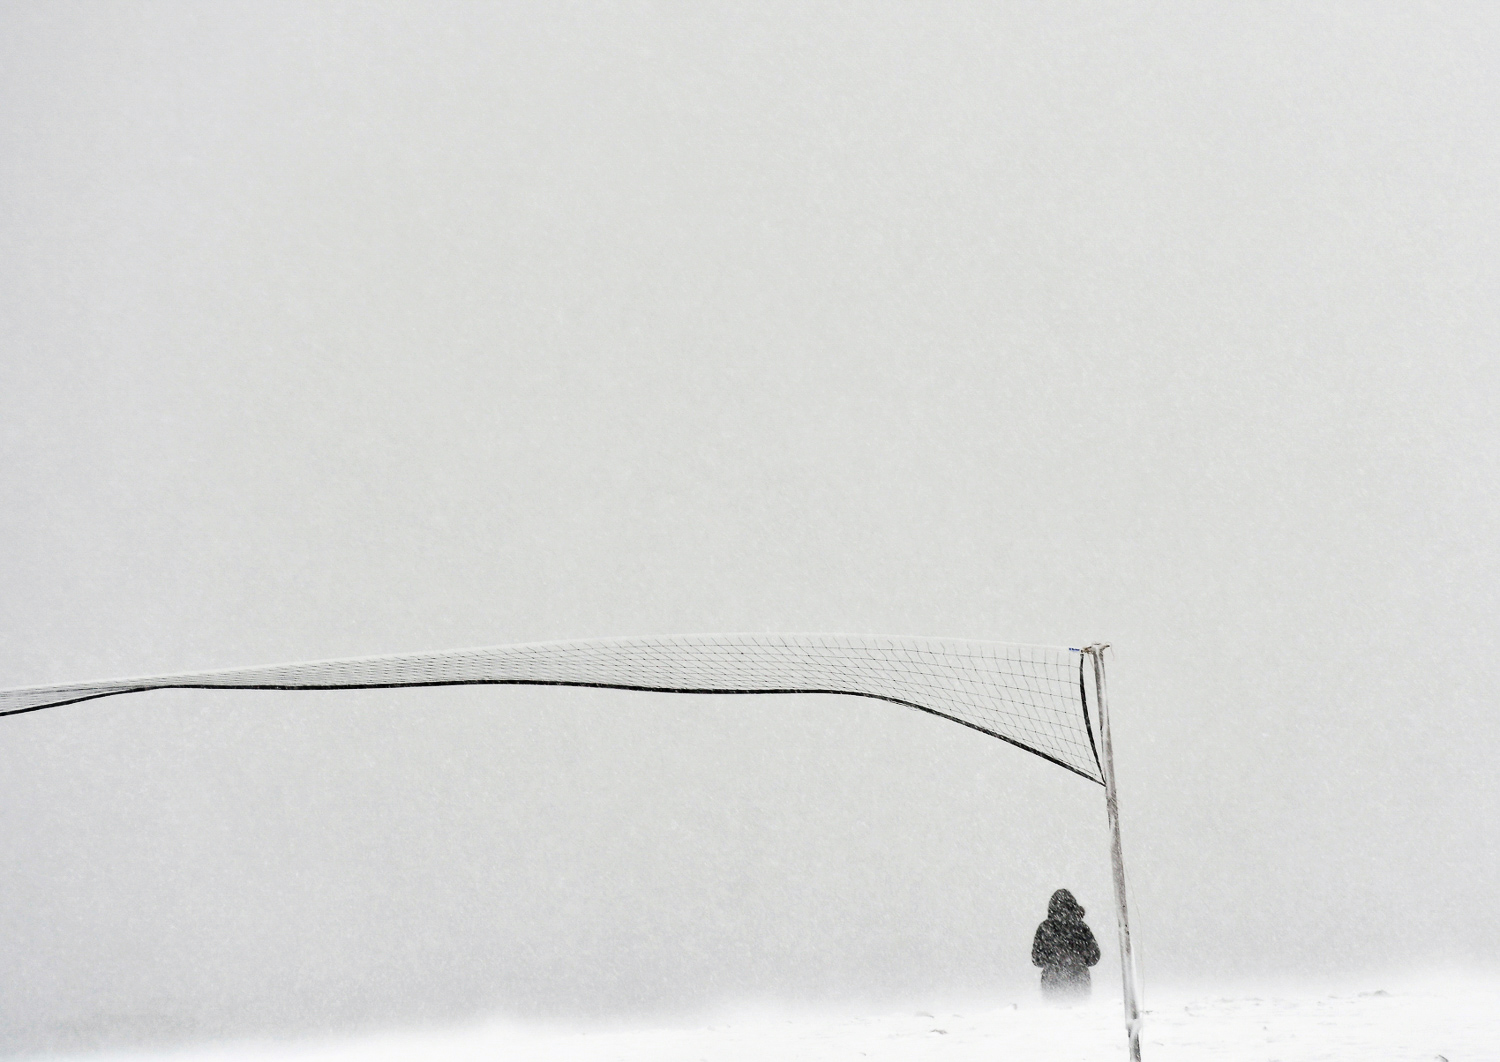 Nikon D500, 1/320 @ f/5.6, ISO 250, 70-200mm  A person walks along Devereaux in Marblehead in whiteout conditions during Winter Storm Stella.